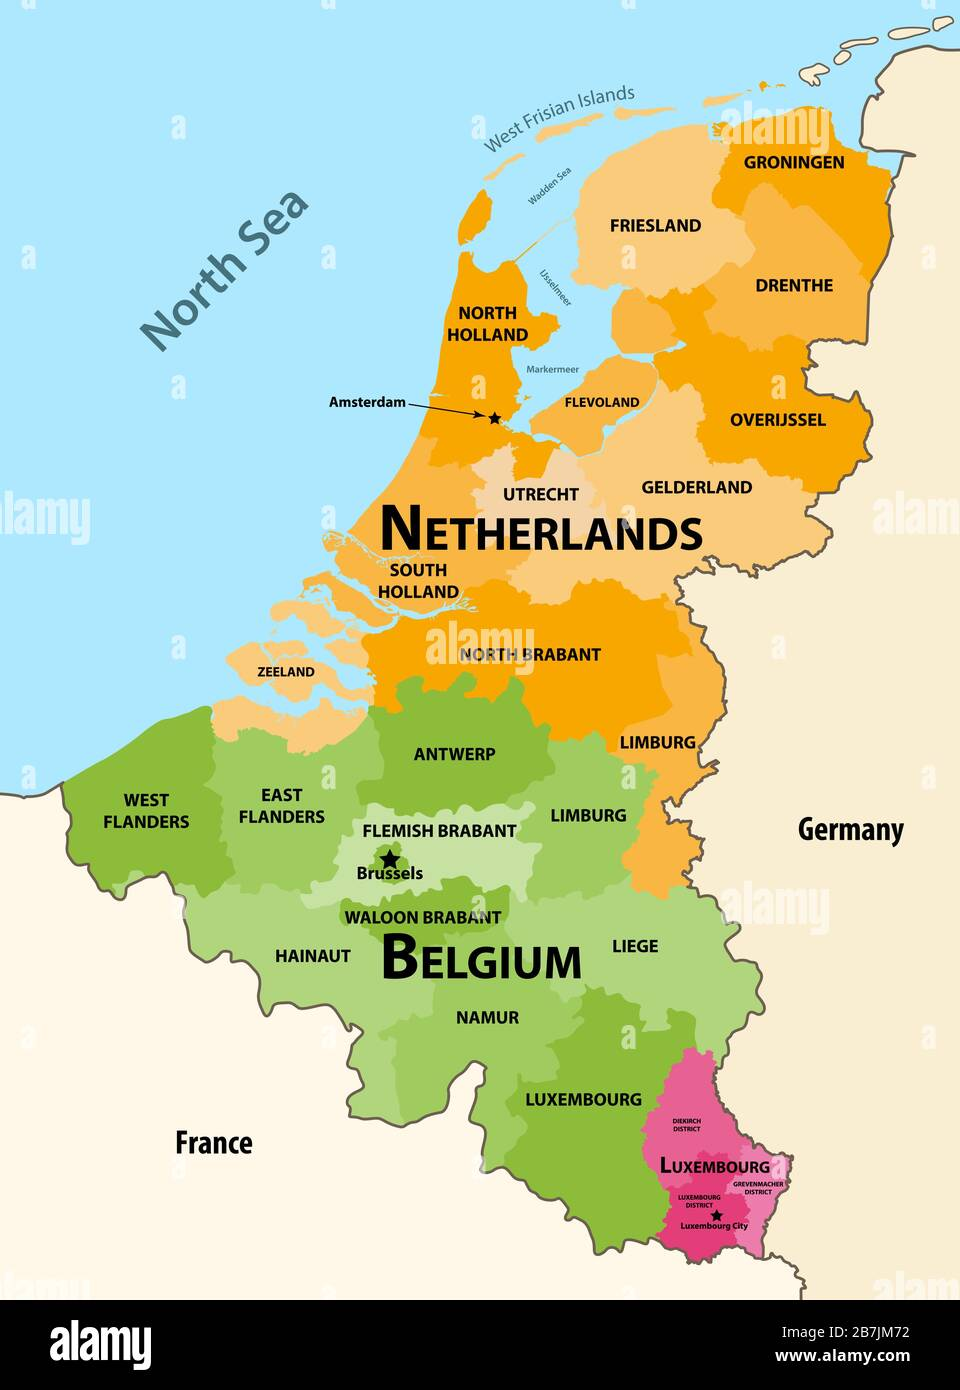 Vector Regions Map Of Benelux Countries Belgium Netherlands And Luxembourg With Neighbouring Countries And Territories Stock Vector Image Art Alamy